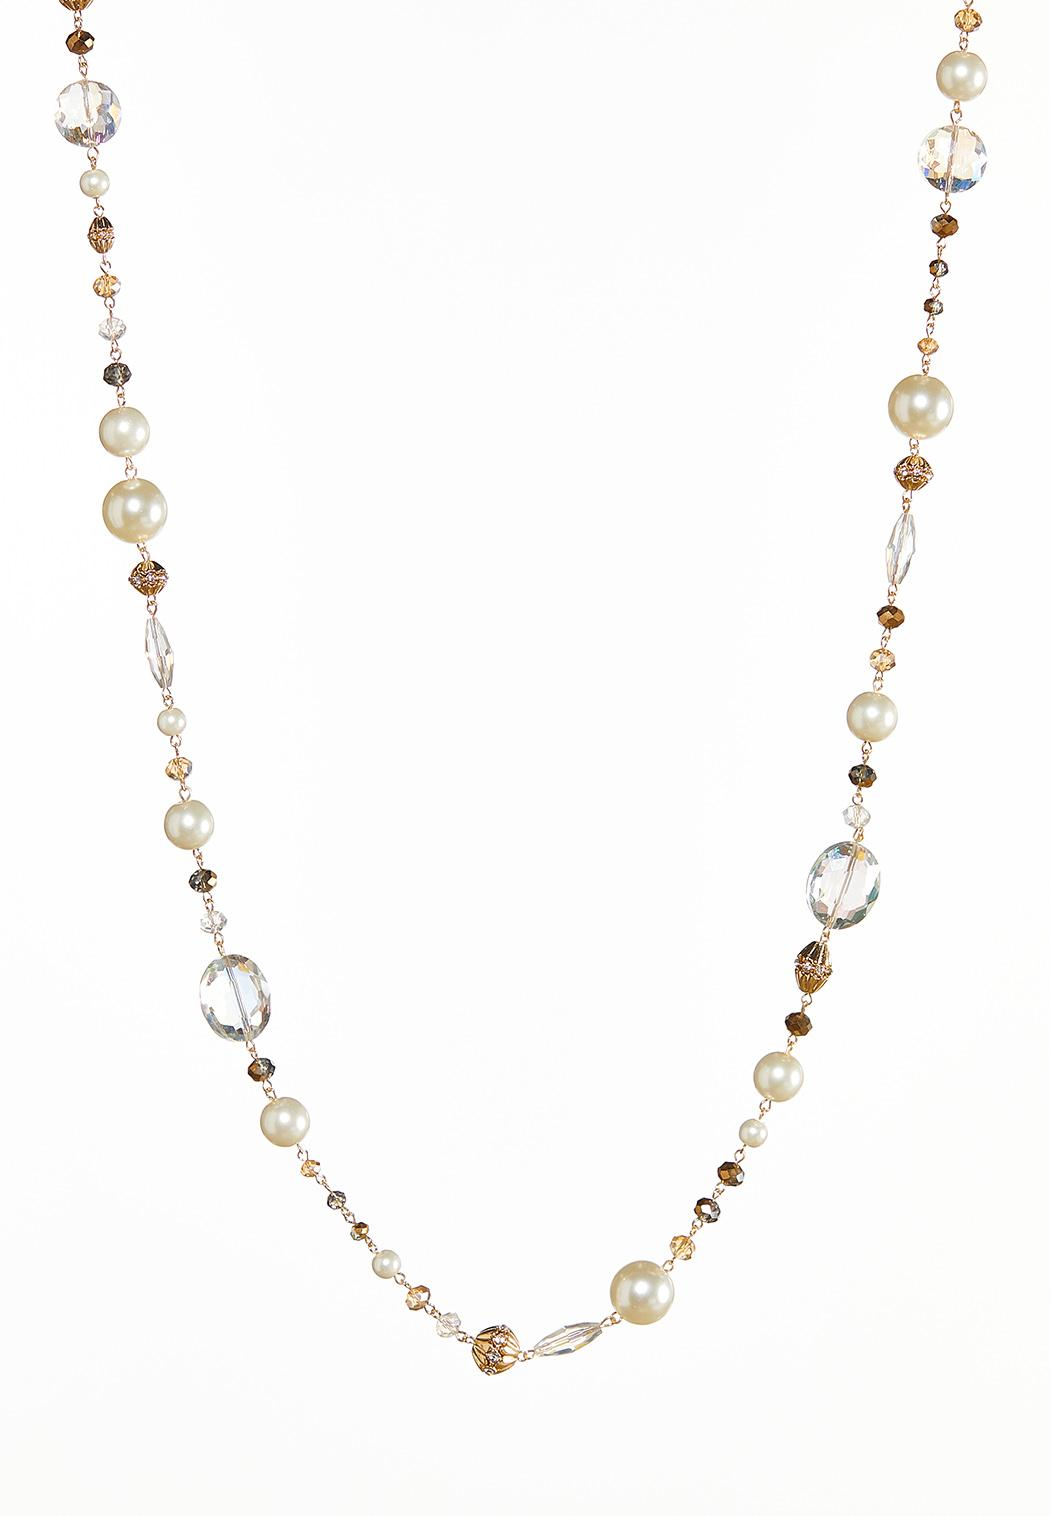 Delicate Mixed Bead Necklace